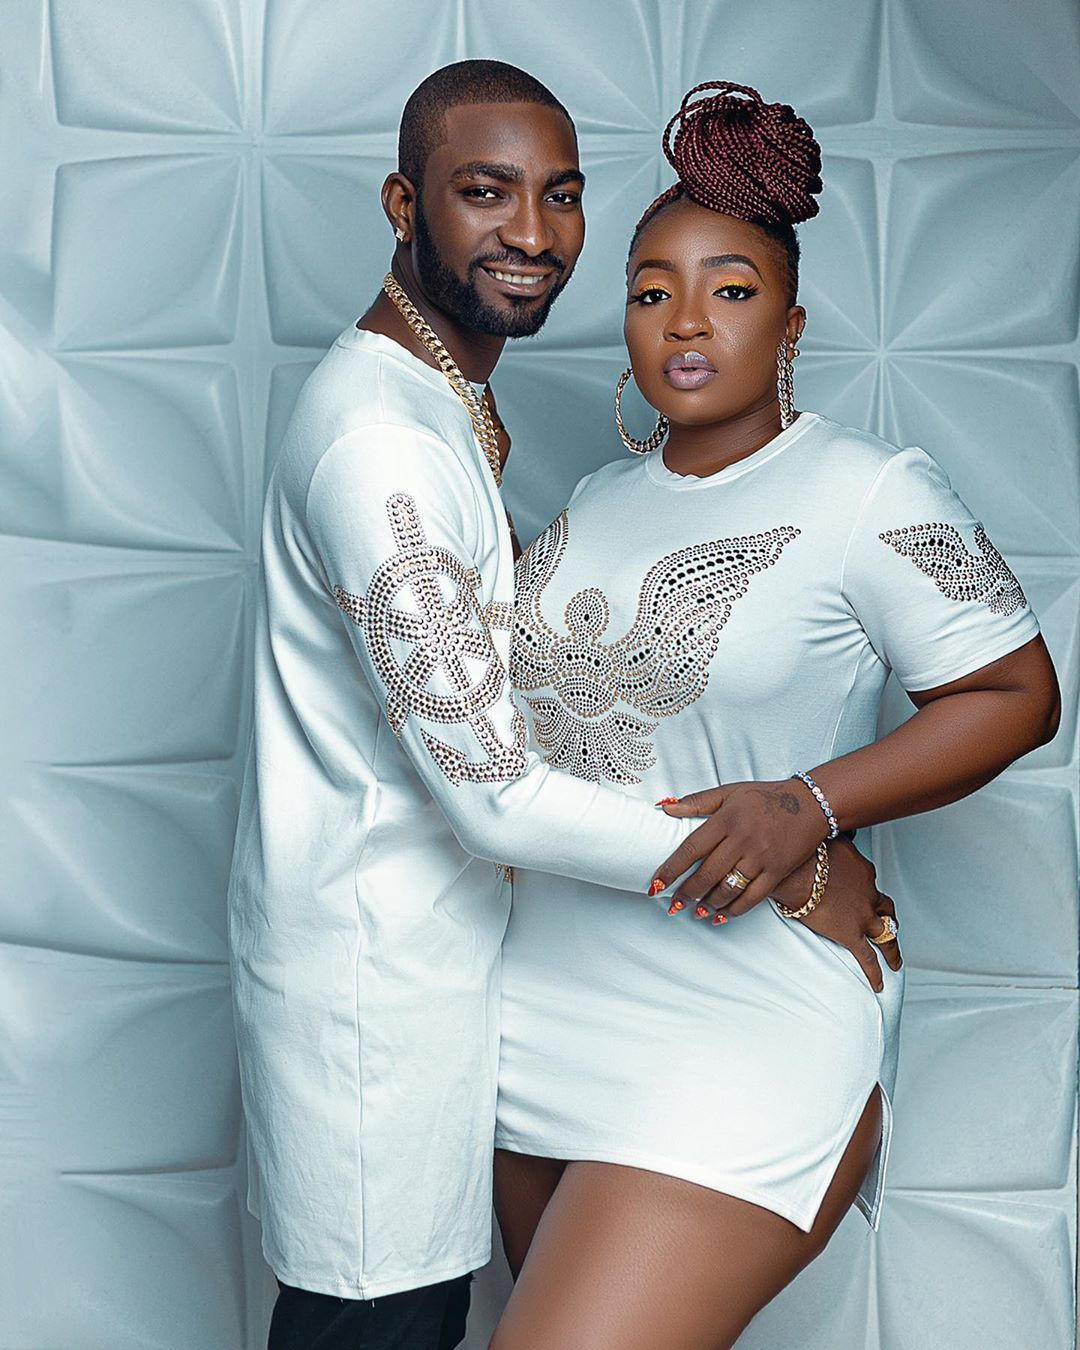 Sit down You no dey go anywhere - Anita Joseph's husband hilariously reacts to her asking if she can go for BBNaija